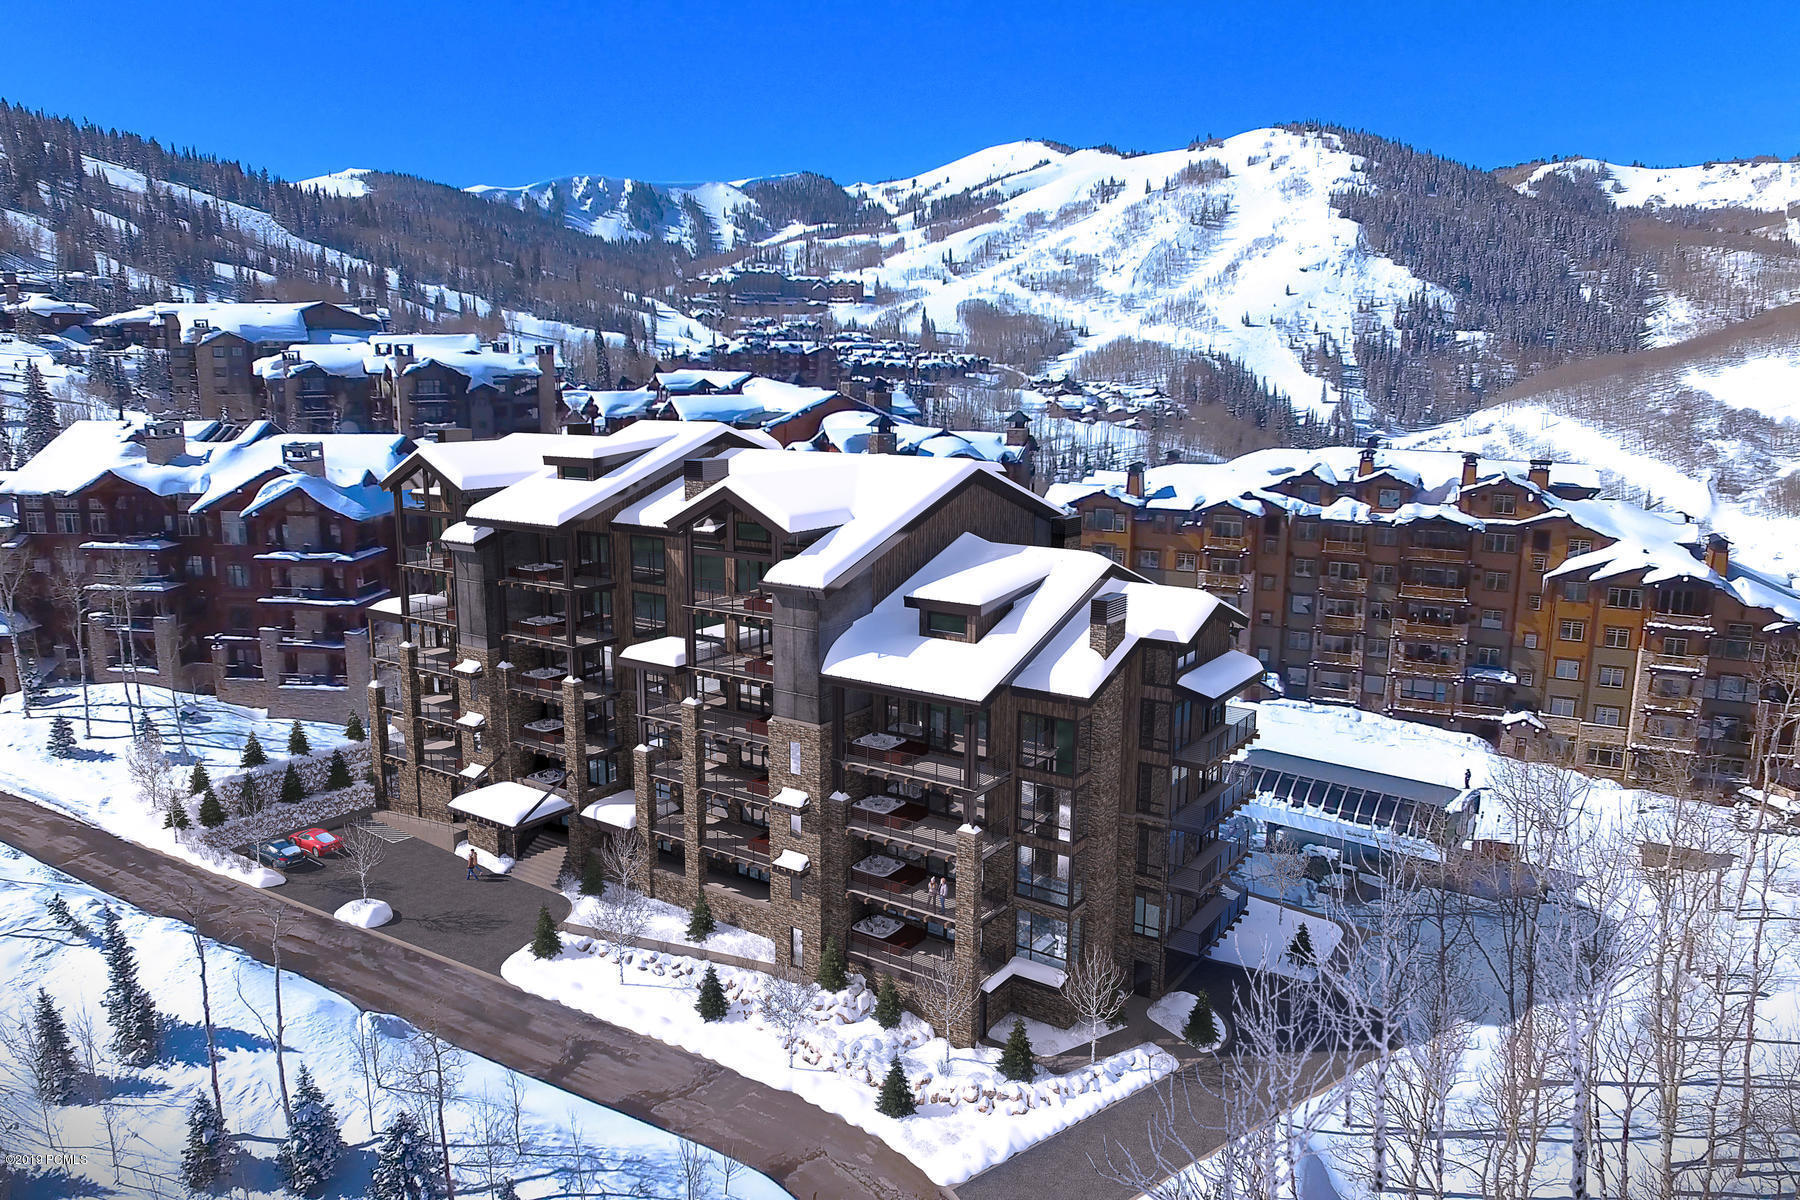 7697 Village Way, Park City, Utah 84060, 4 Bedrooms Bedrooms, ,5 BathroomsBathrooms,Condominium,For Sale,Village Way,20190109112430415765000000